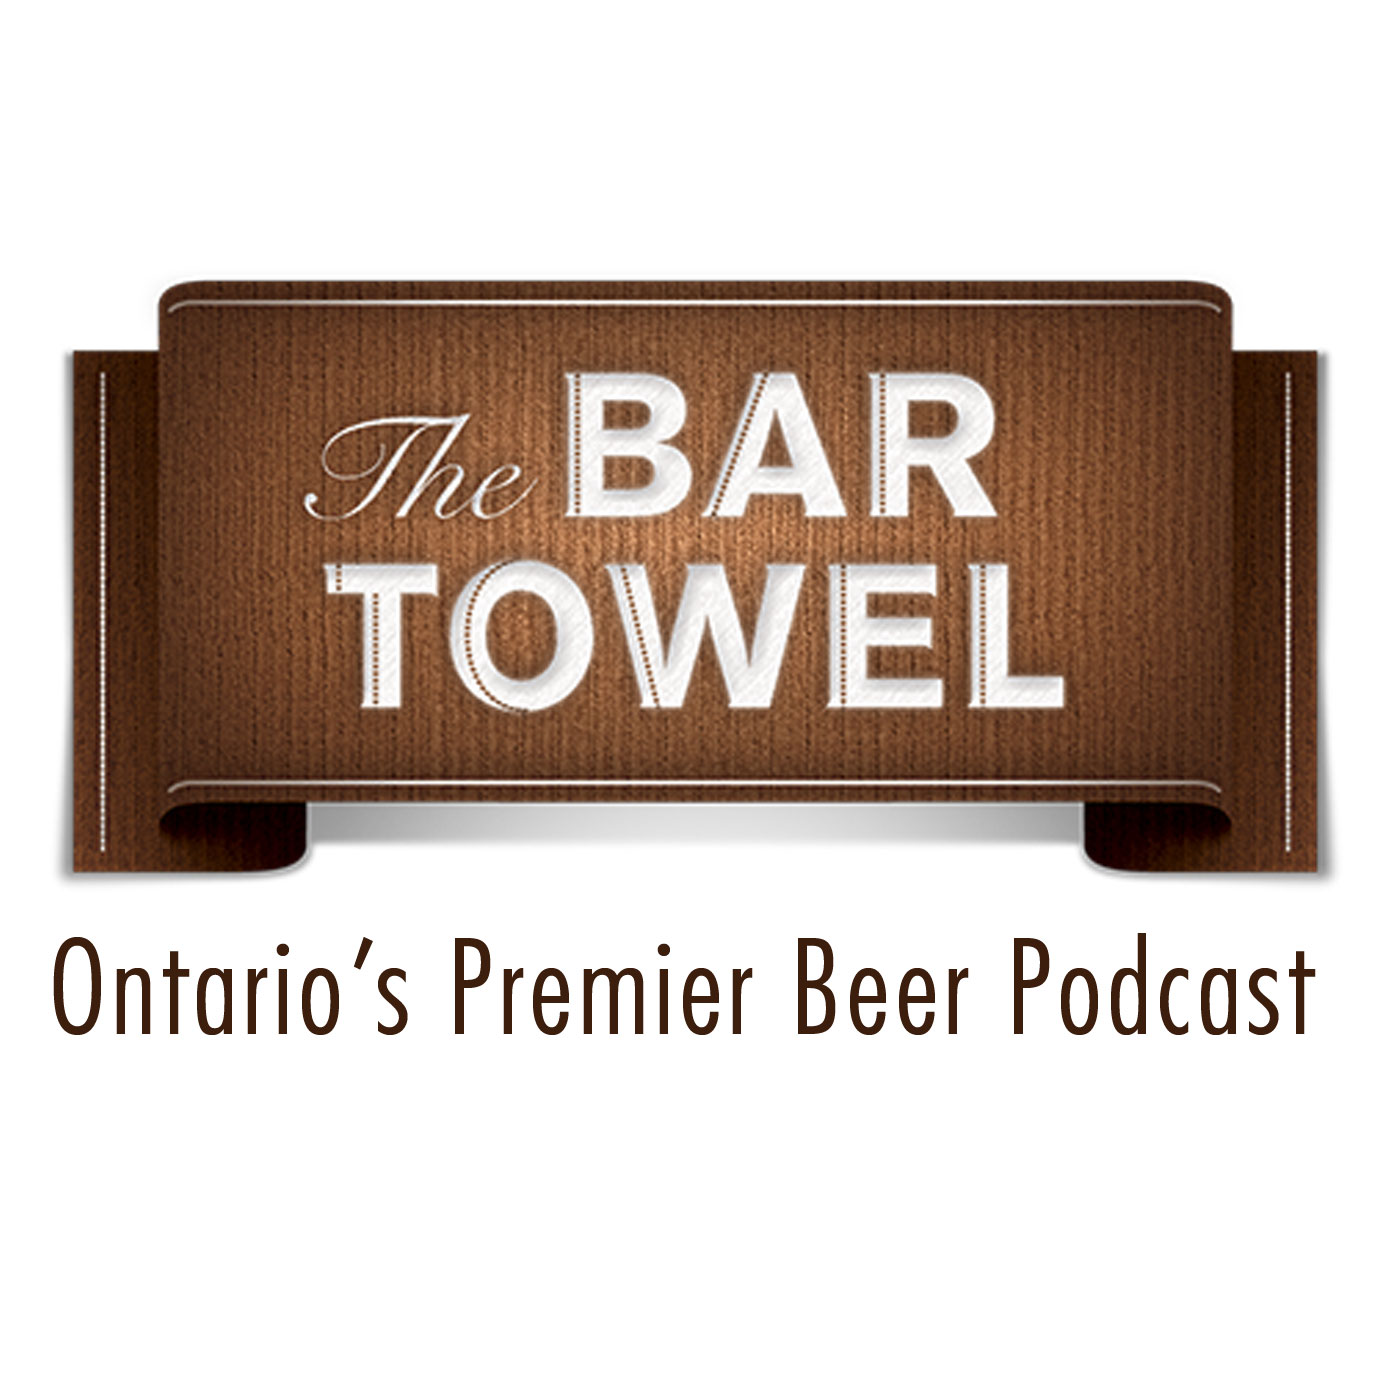 Bar Towel Radio, Ontario's Premier Beer Podcast